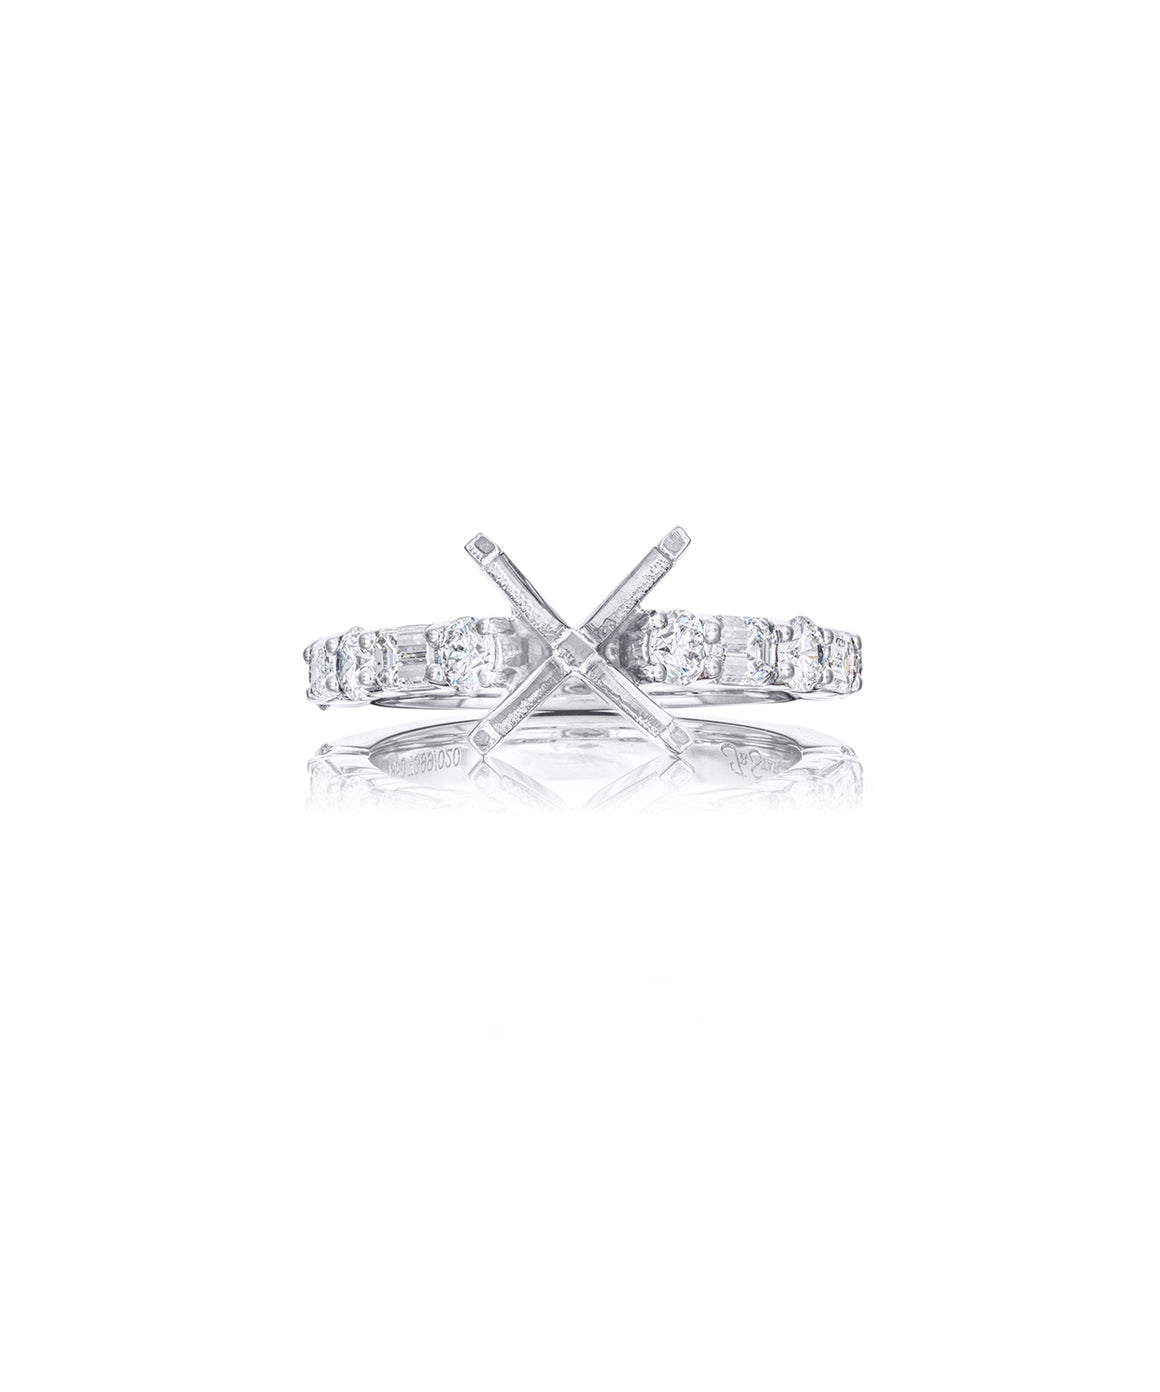 Semimount with Emerald Cut and Round Diamonds